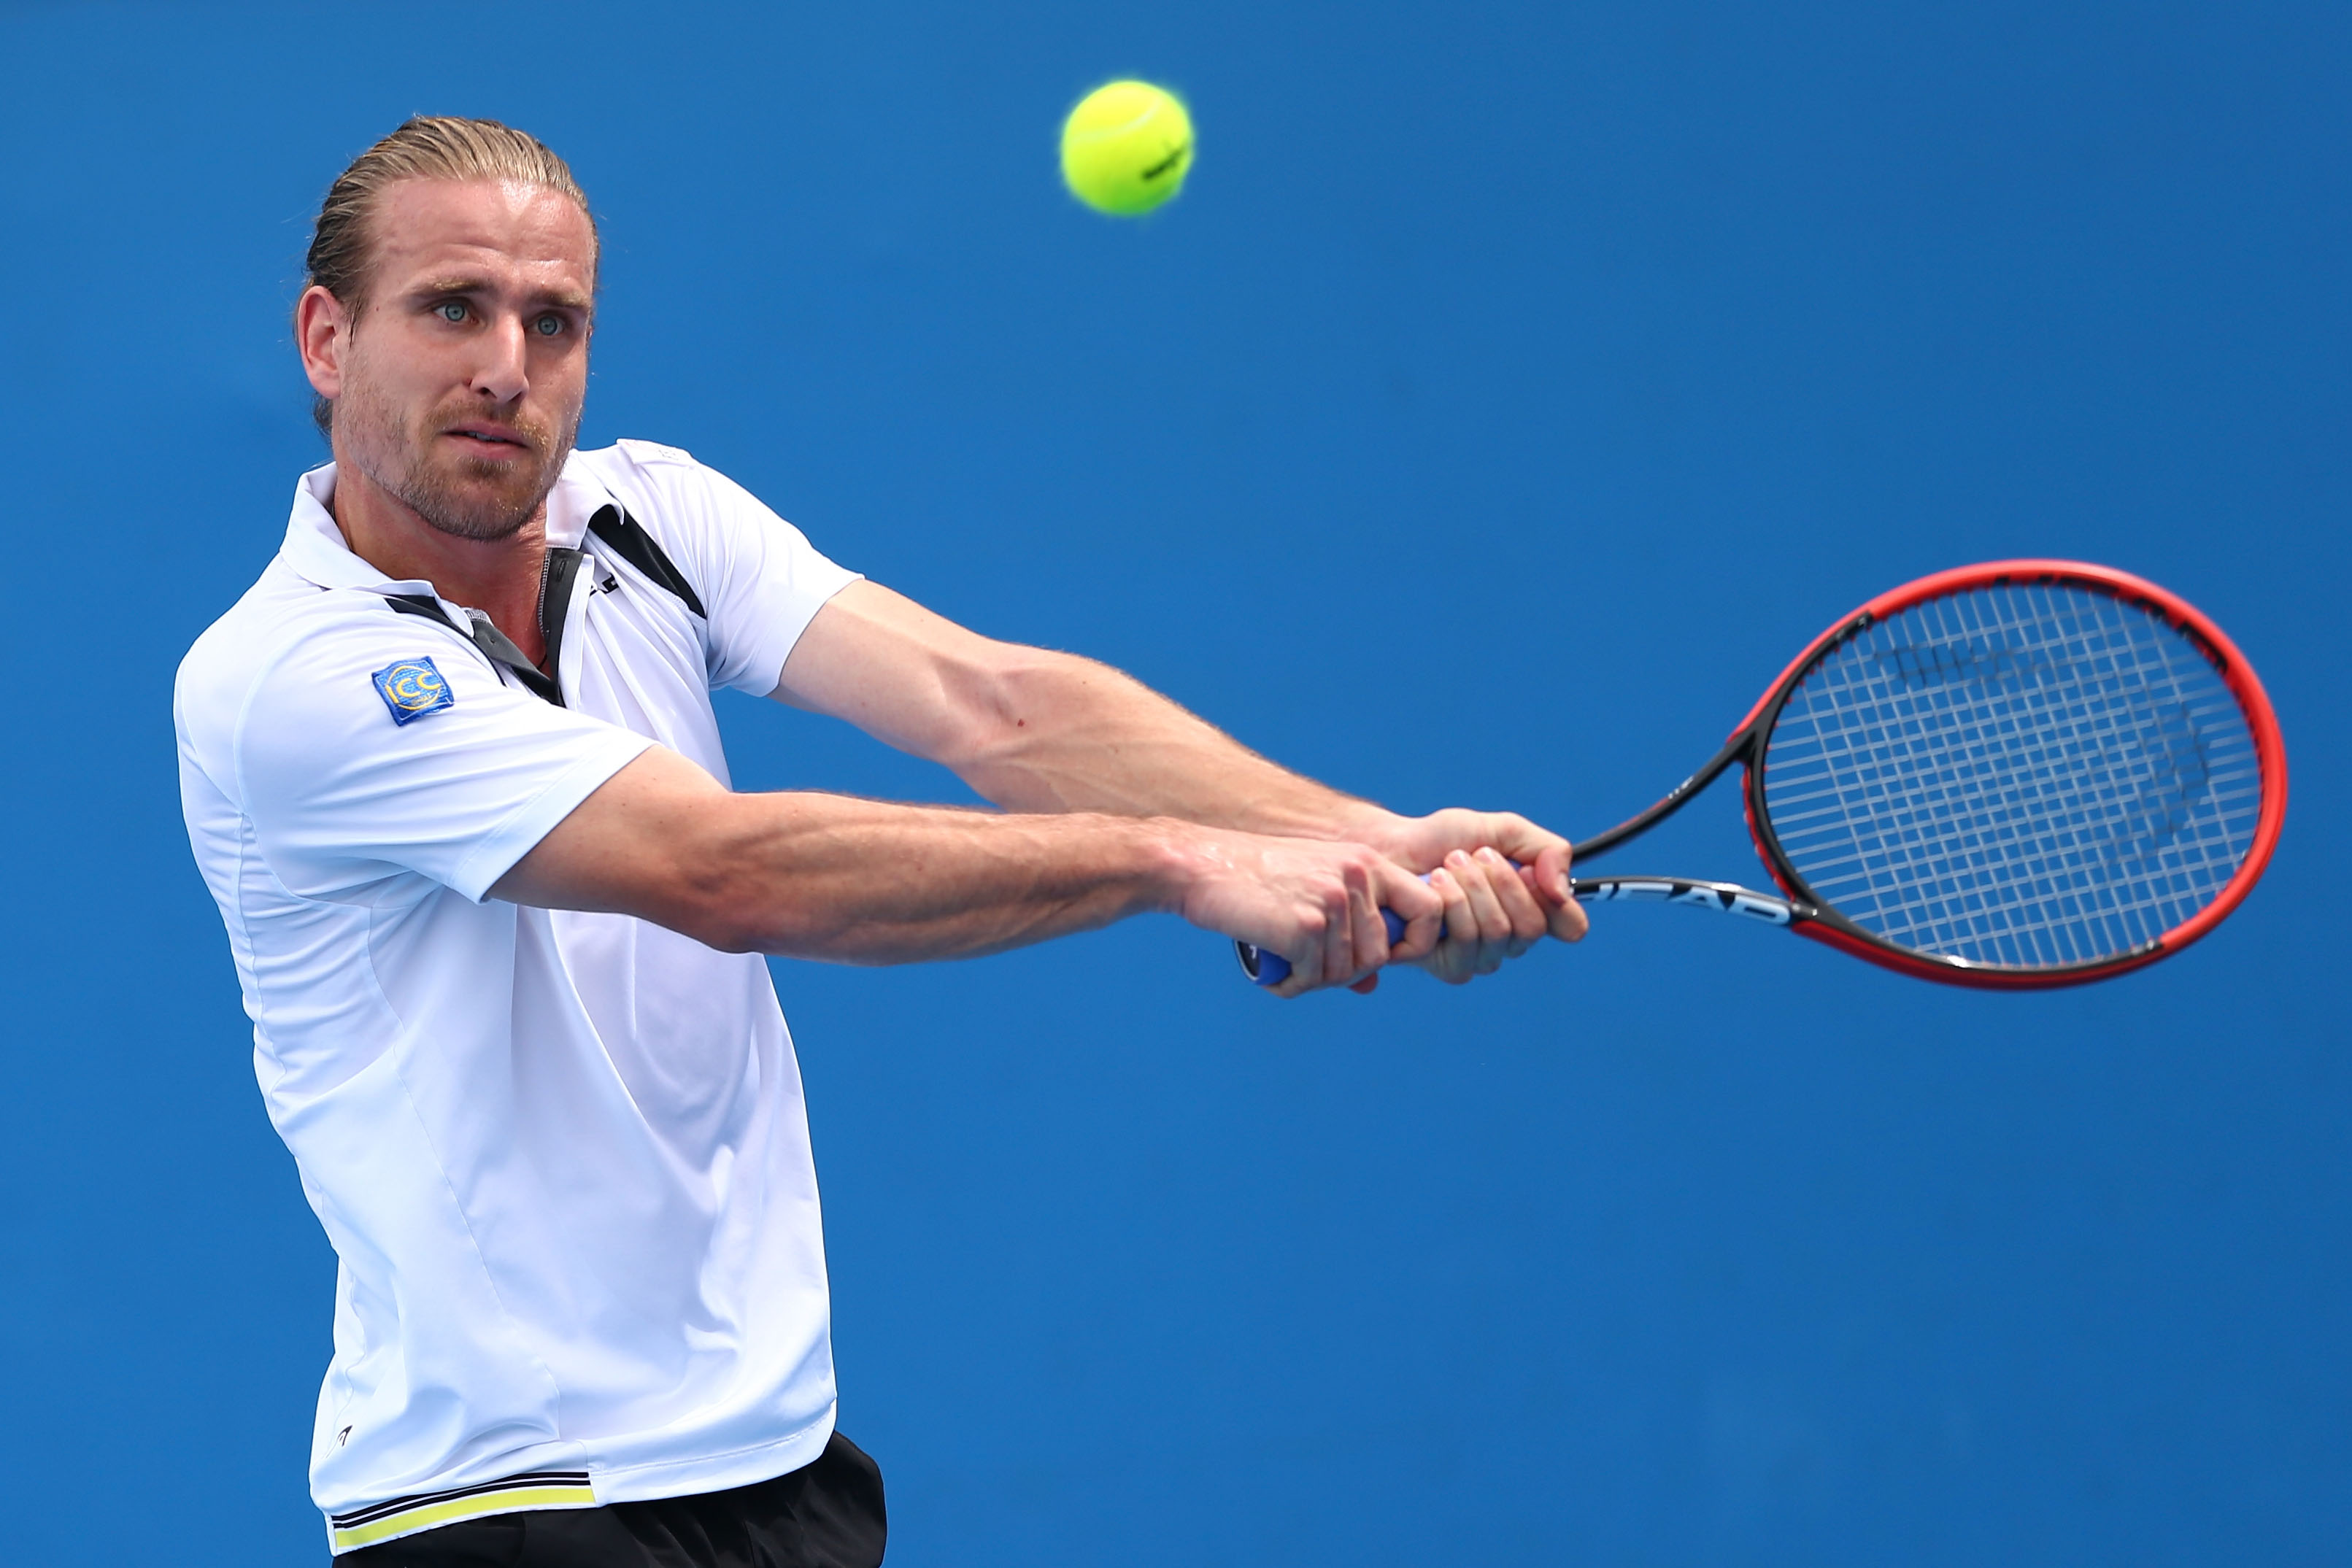 MELBOURNE, AUSTRALIA - JANUARY 20: Peter Gojowczyk of Germany plays a backhand in his first round match against Guillermo Garcia-Lopez of Spain during day two of the 2015 Australian Open at Melbourne Park on January 20, 2015 in Melbourne, Australia. (Photo by Ryan Pierse/Getty Images)